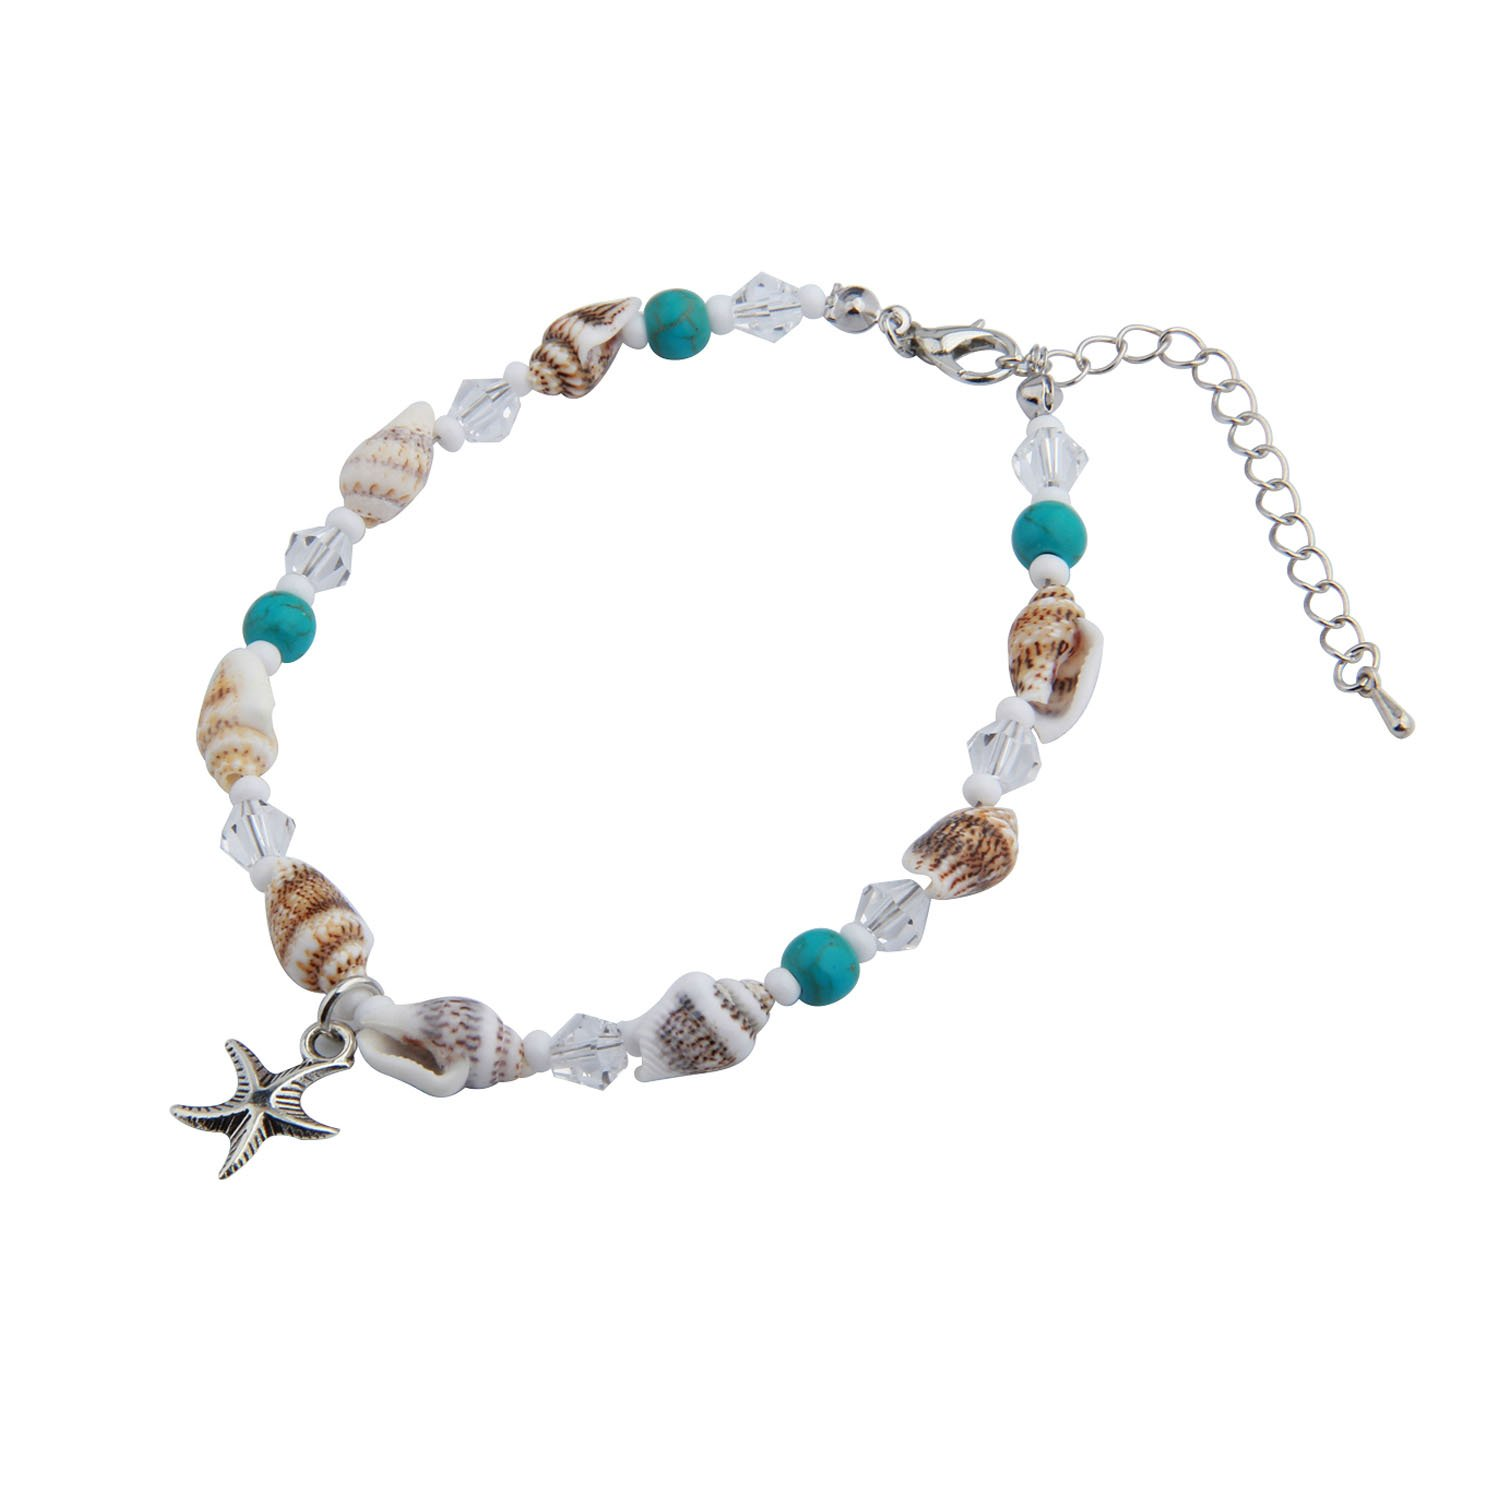 RQIER Starfish Themed Anklet Bracelet Adjustable Starfish Shell Bead Chain Ankle Bracelet Hawaiian Style Beach Jewelry